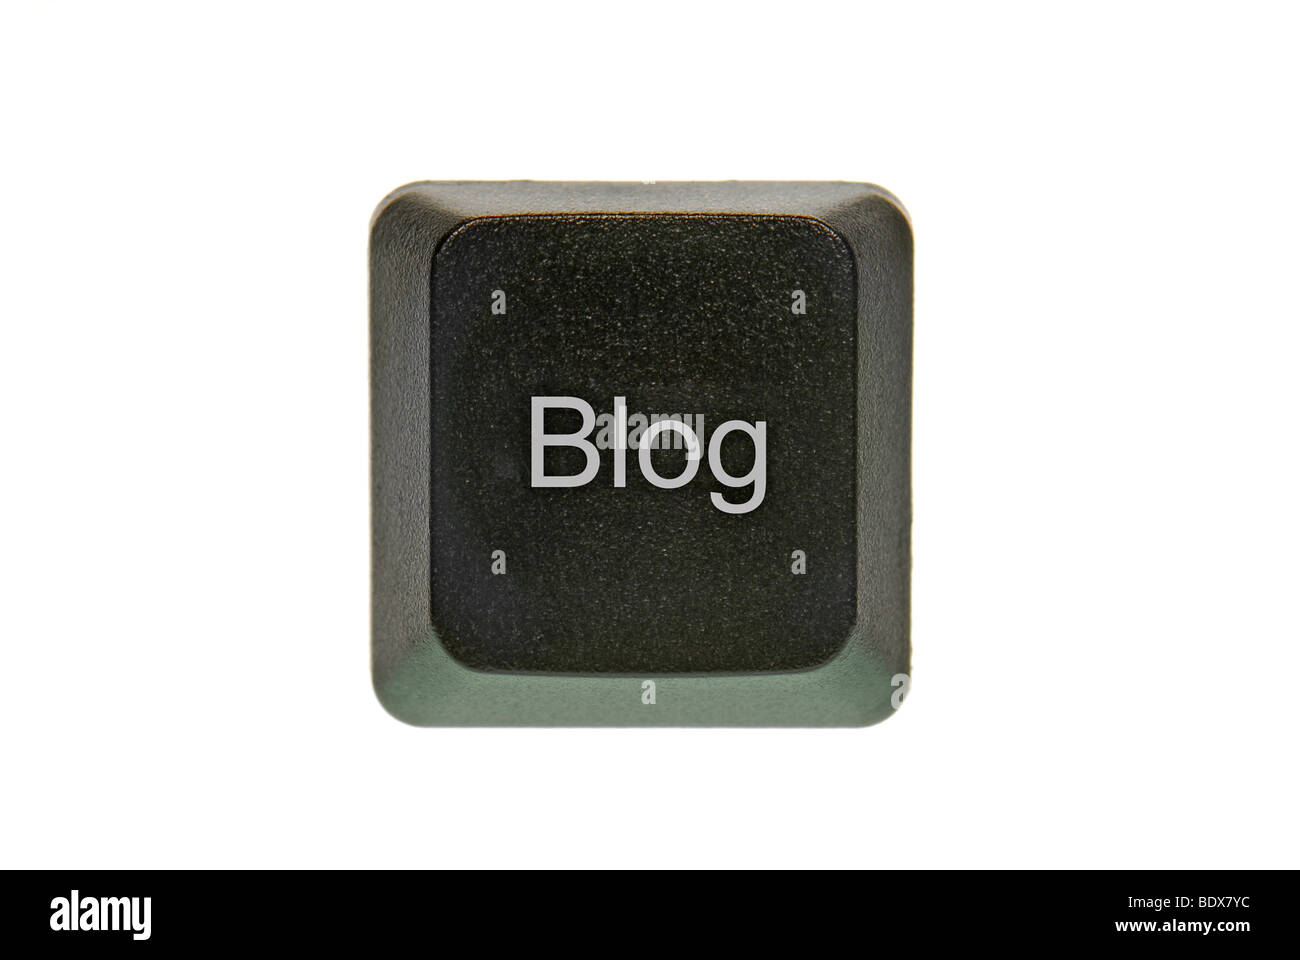 Computer key with inscription Blog - Stock Image